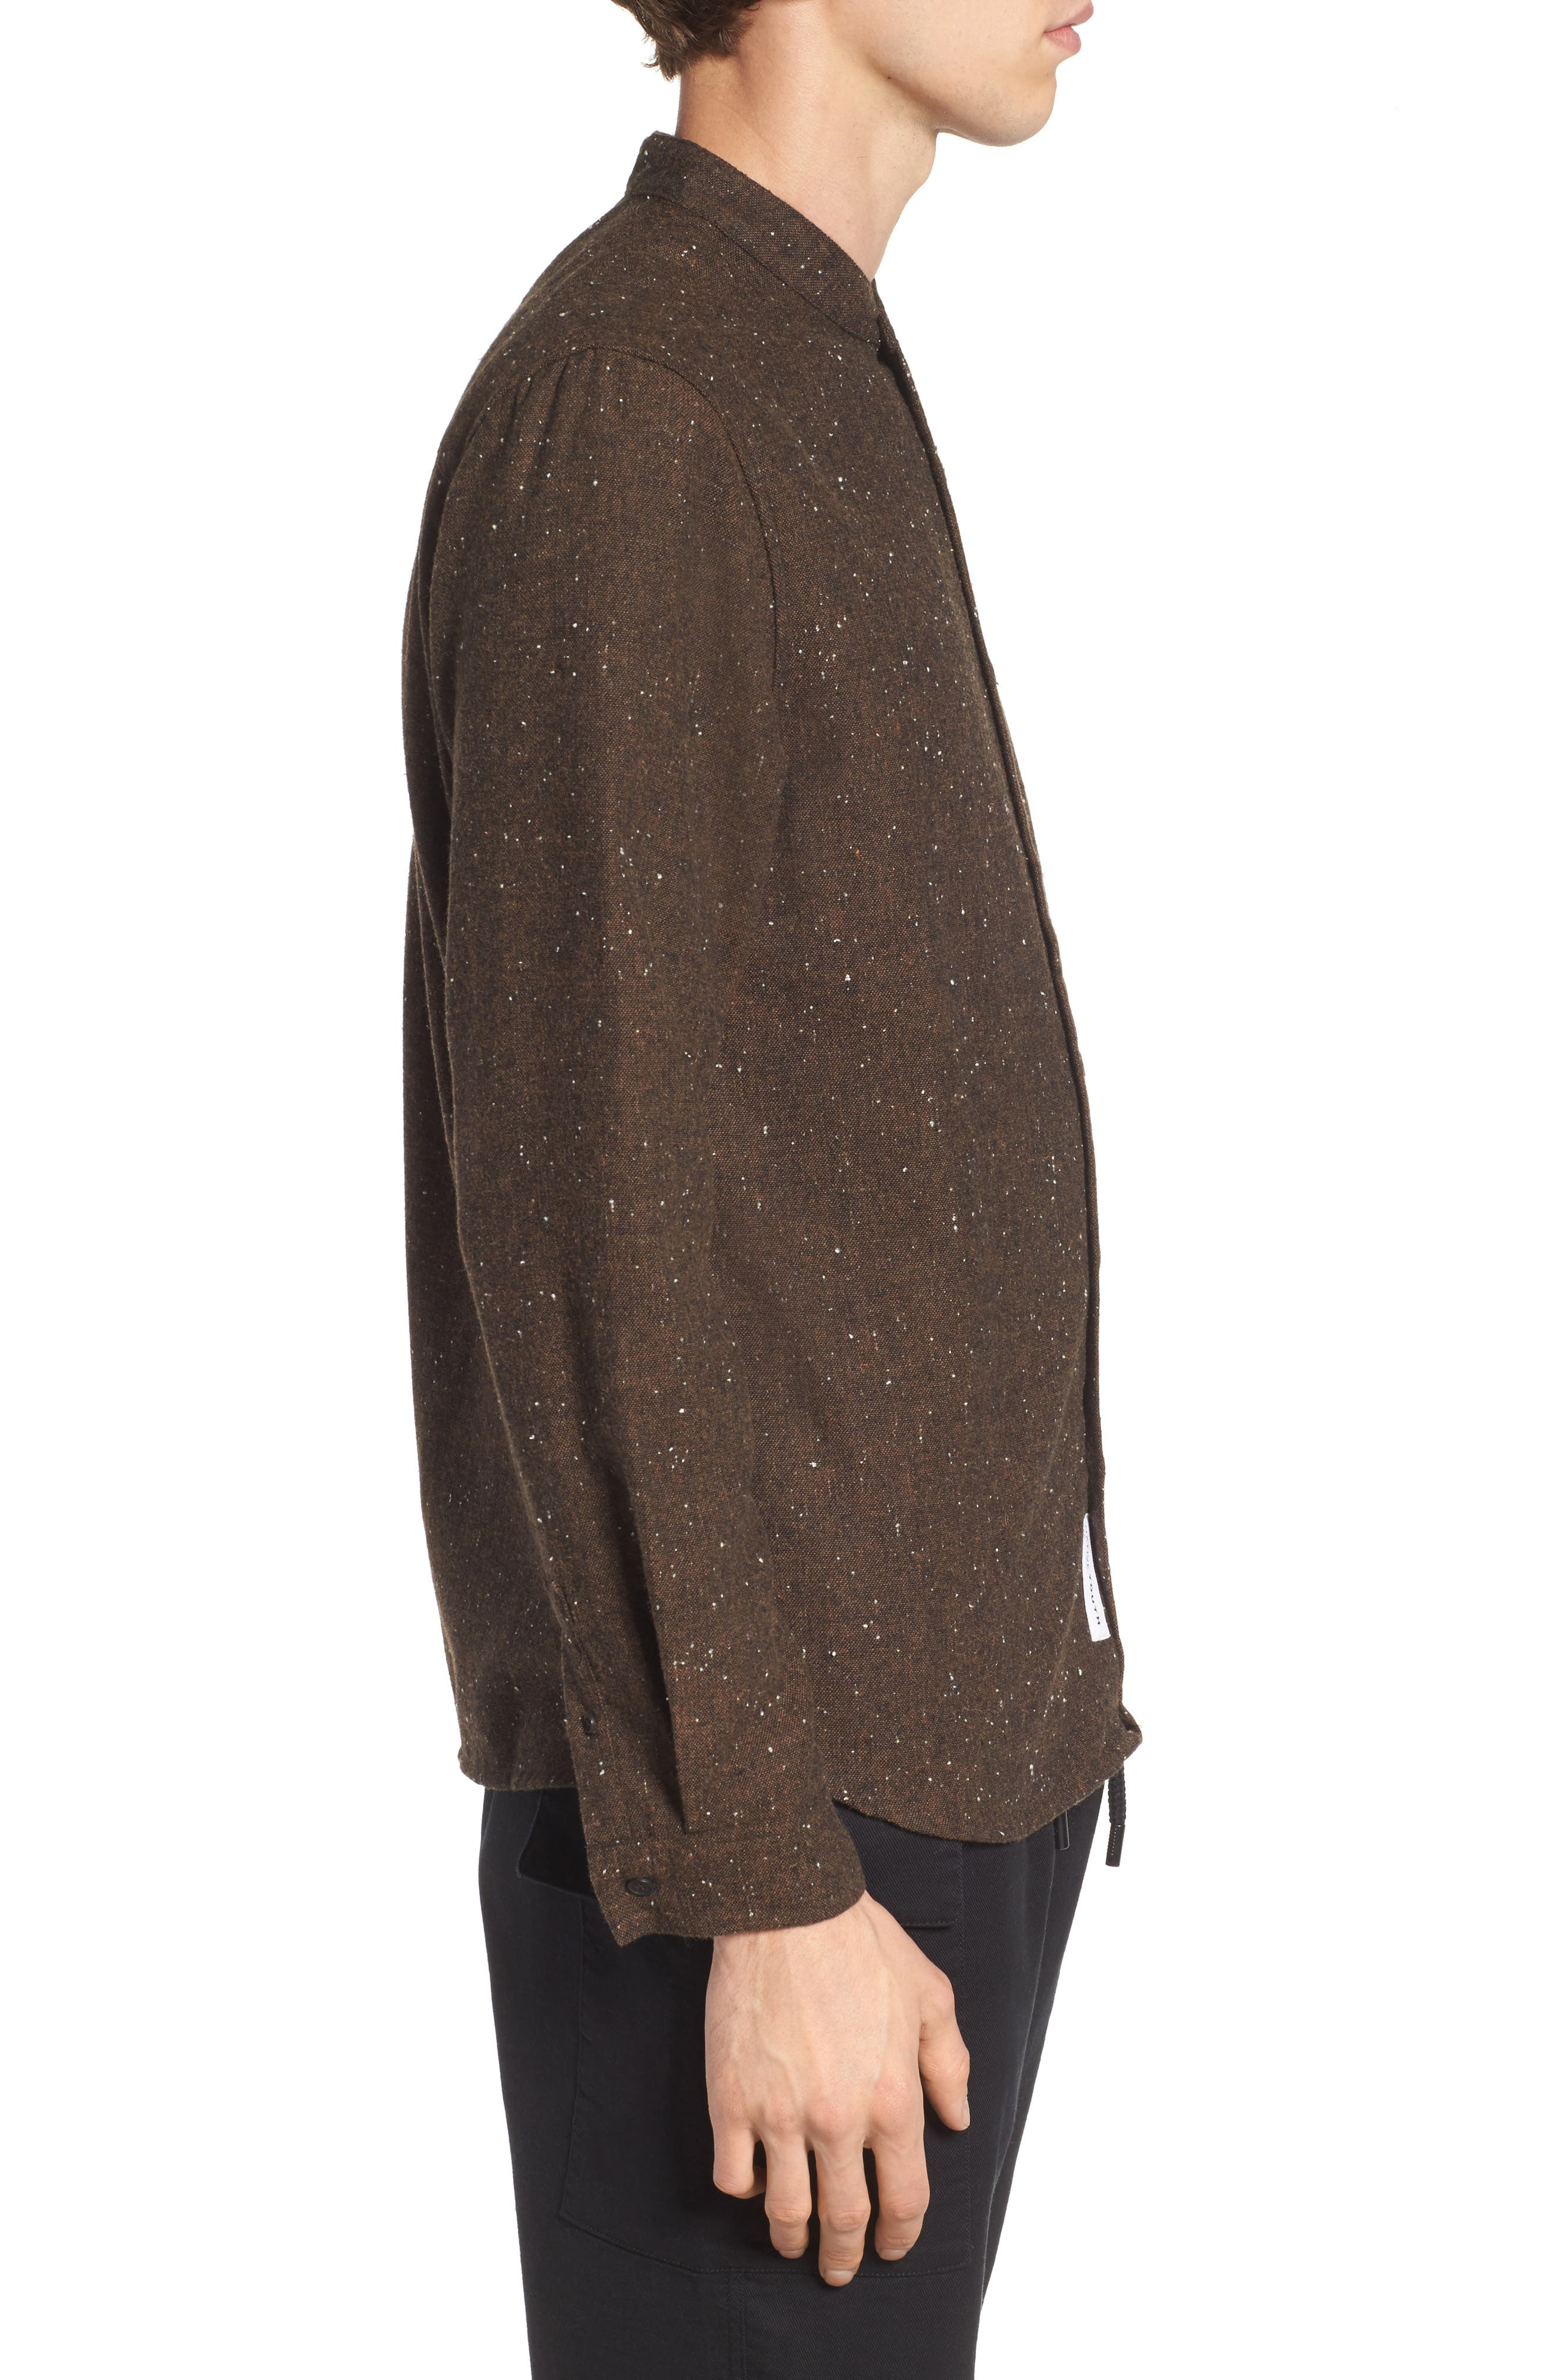 Alford Nep Shirt,                             Alternate thumbnail 3, color,                             Brown